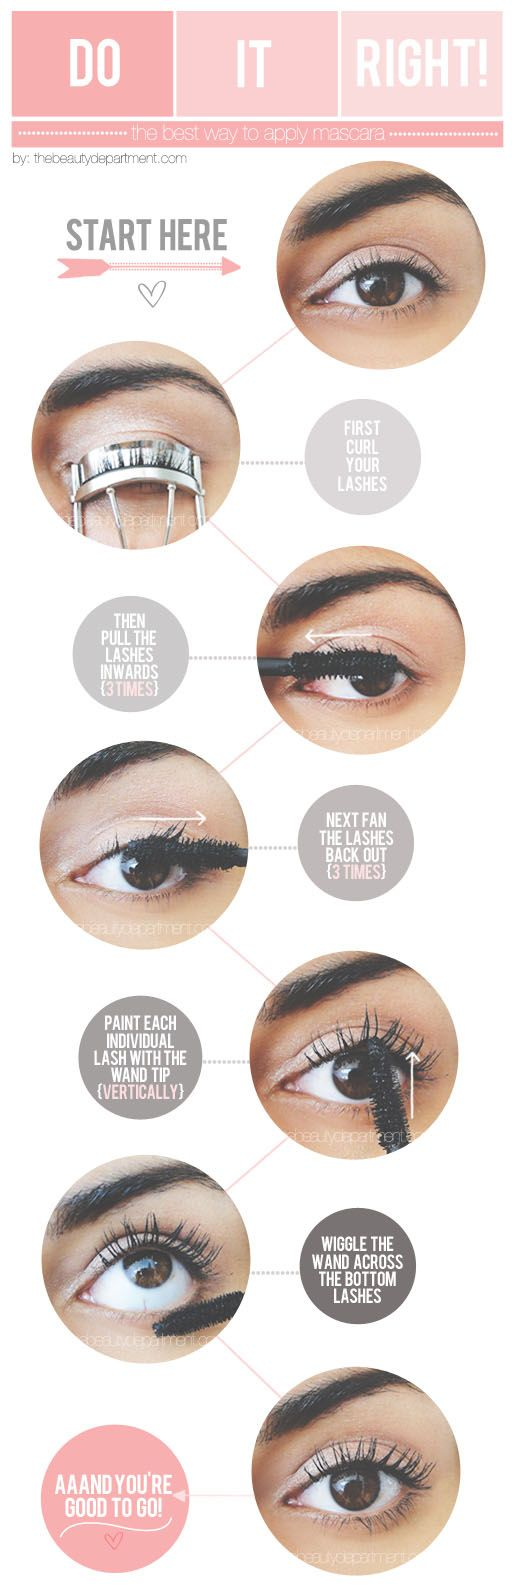 how to make your lashes look longer with mascara